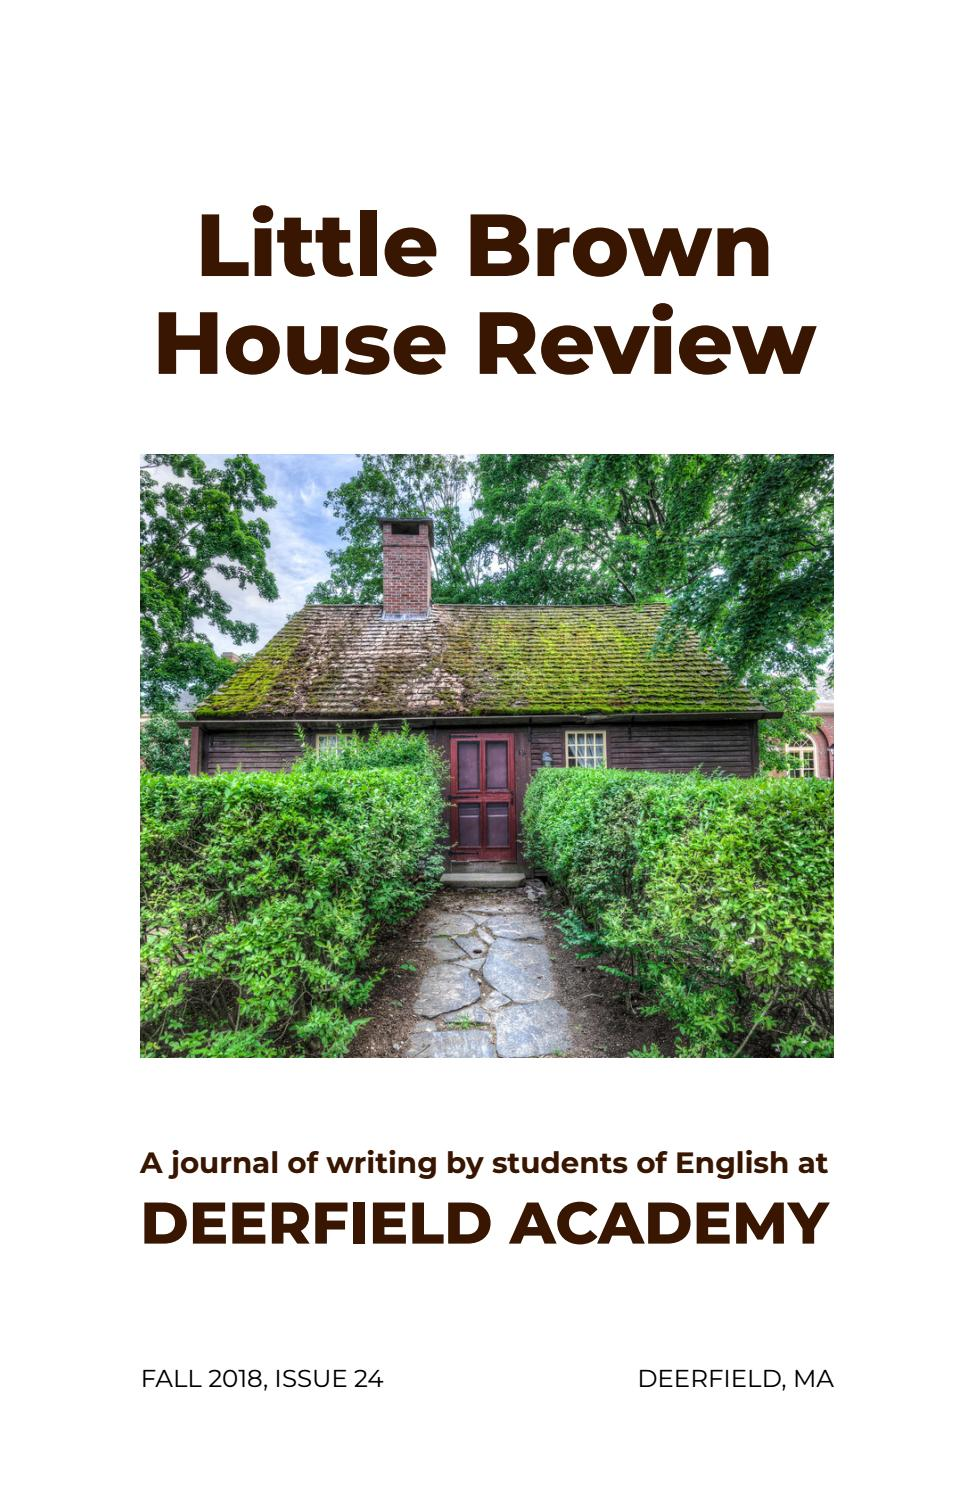 ec7c5fbe06e Little Brown House Review 24 by Deerfield Academy - issuu